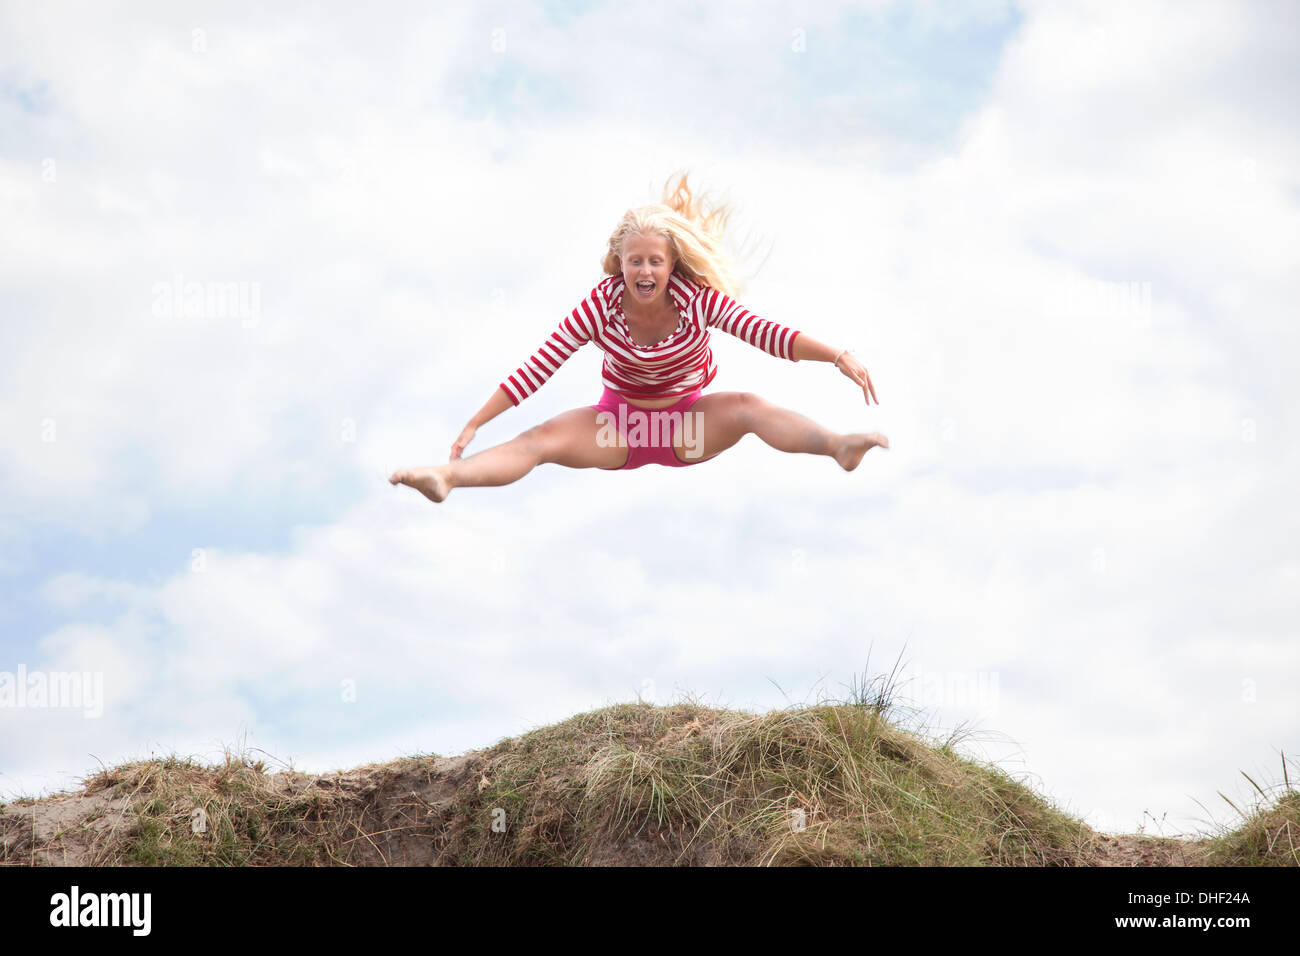 Teenage girl leaping mid air avec jambes, Pays de Galles, Royaume-Uni Photo Stock